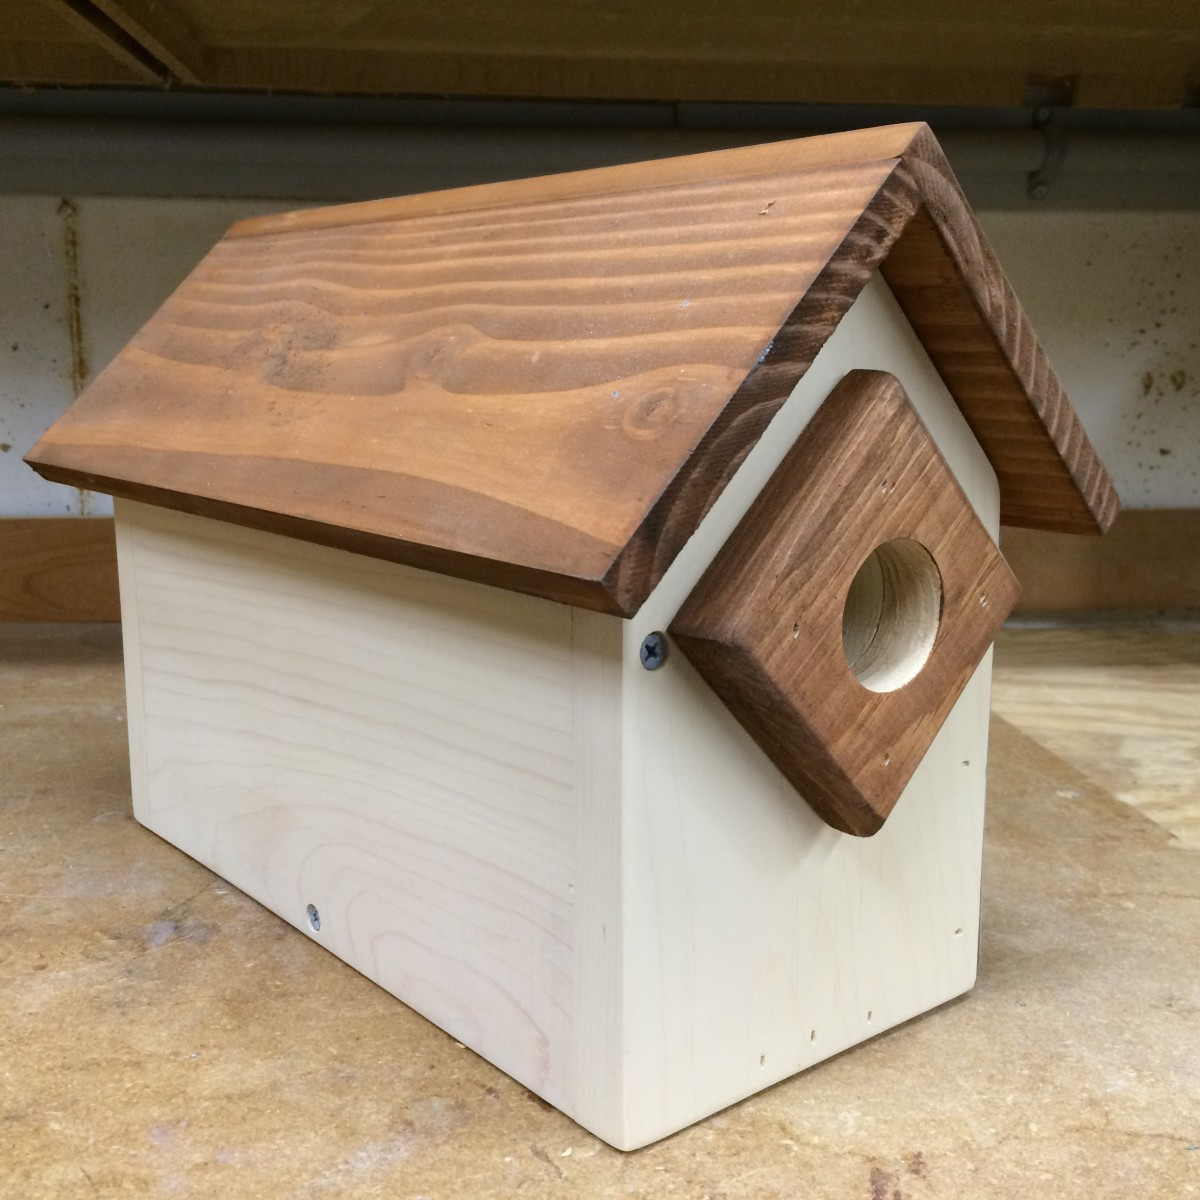 How to Build a Duplex Condo Birdhouse | FeltMagnet Whimsical Birdhouse Designs Free Html on